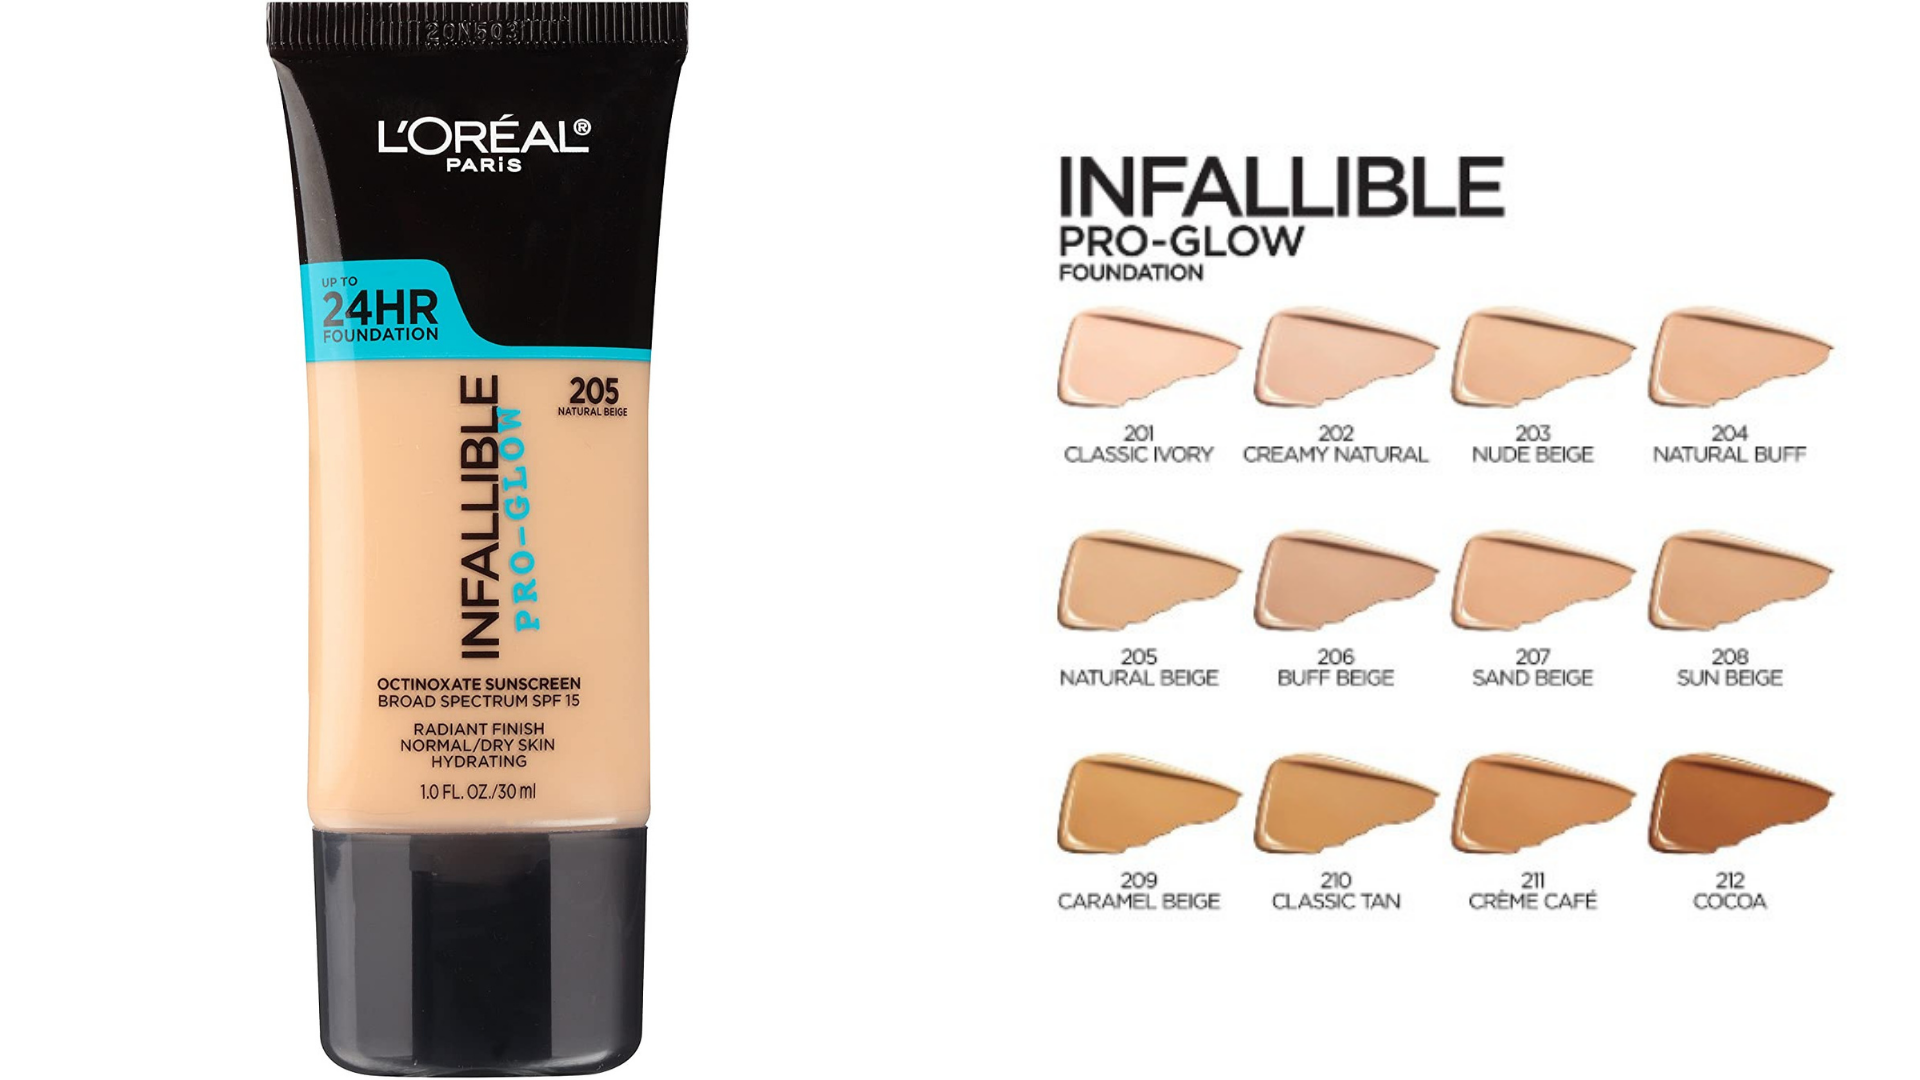 An infographic shows different shades of a foundation next to a tube.